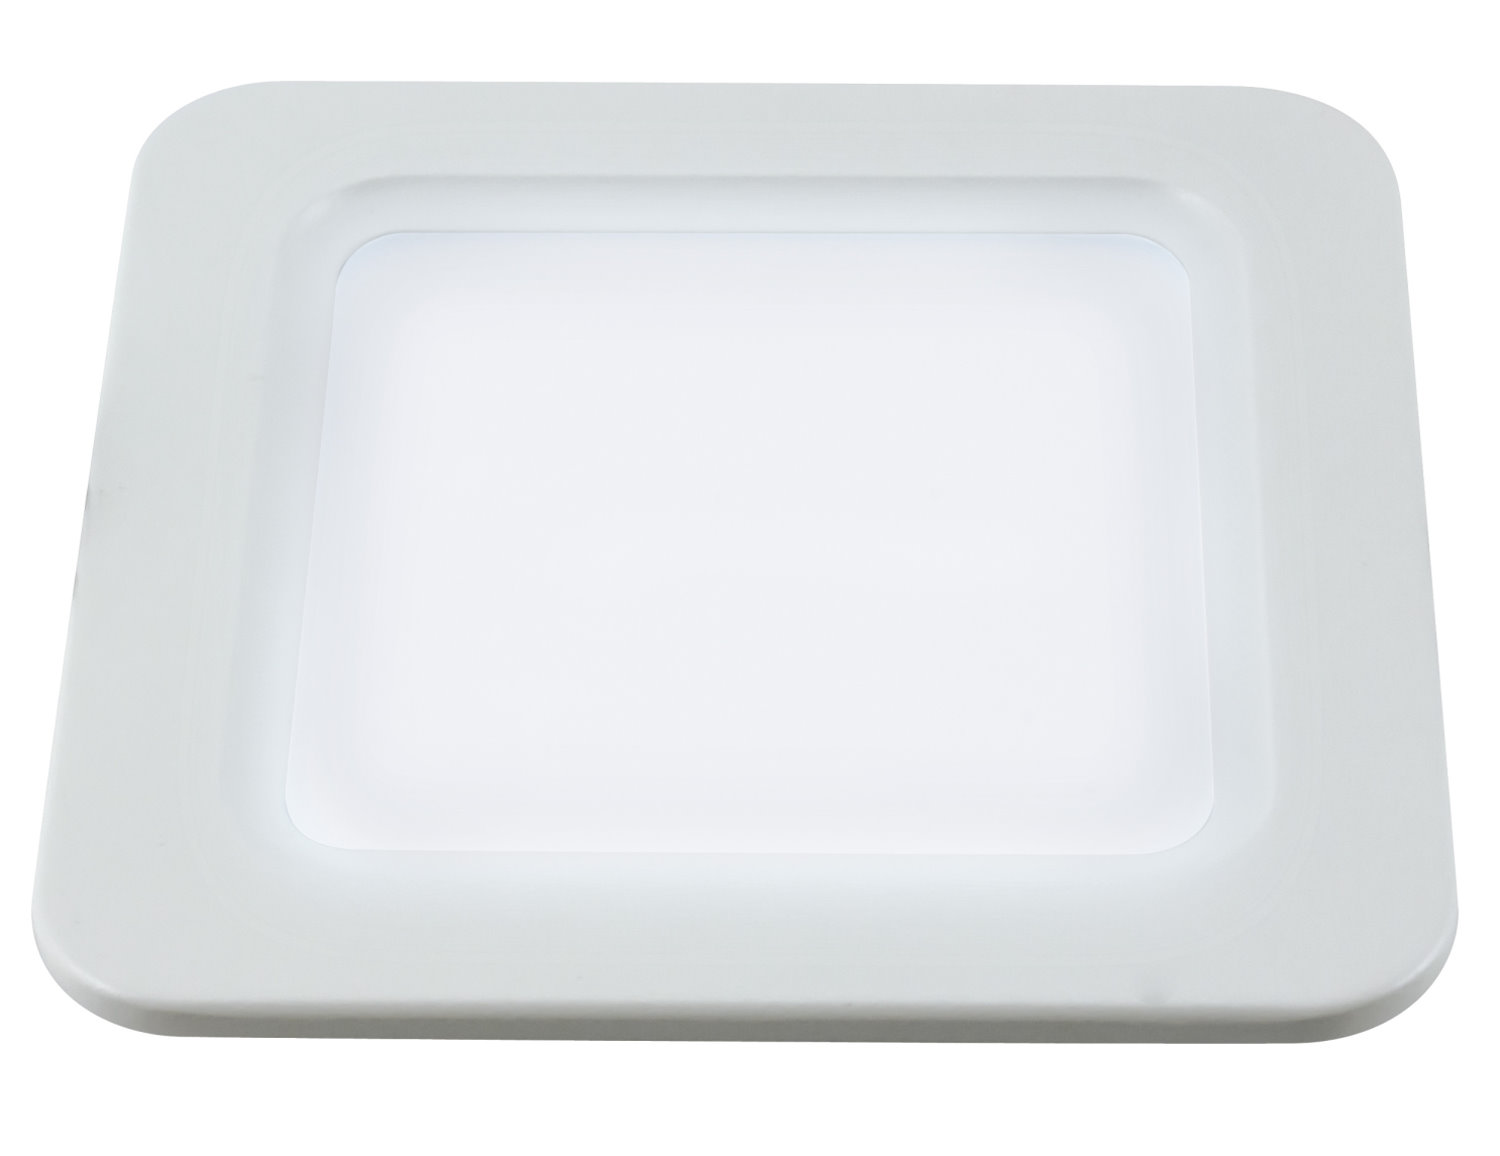 Deckenlampe Led Dimmbar Smd Led Panel Dimmbar Deckenlampe Leuchte Deckenleuchte